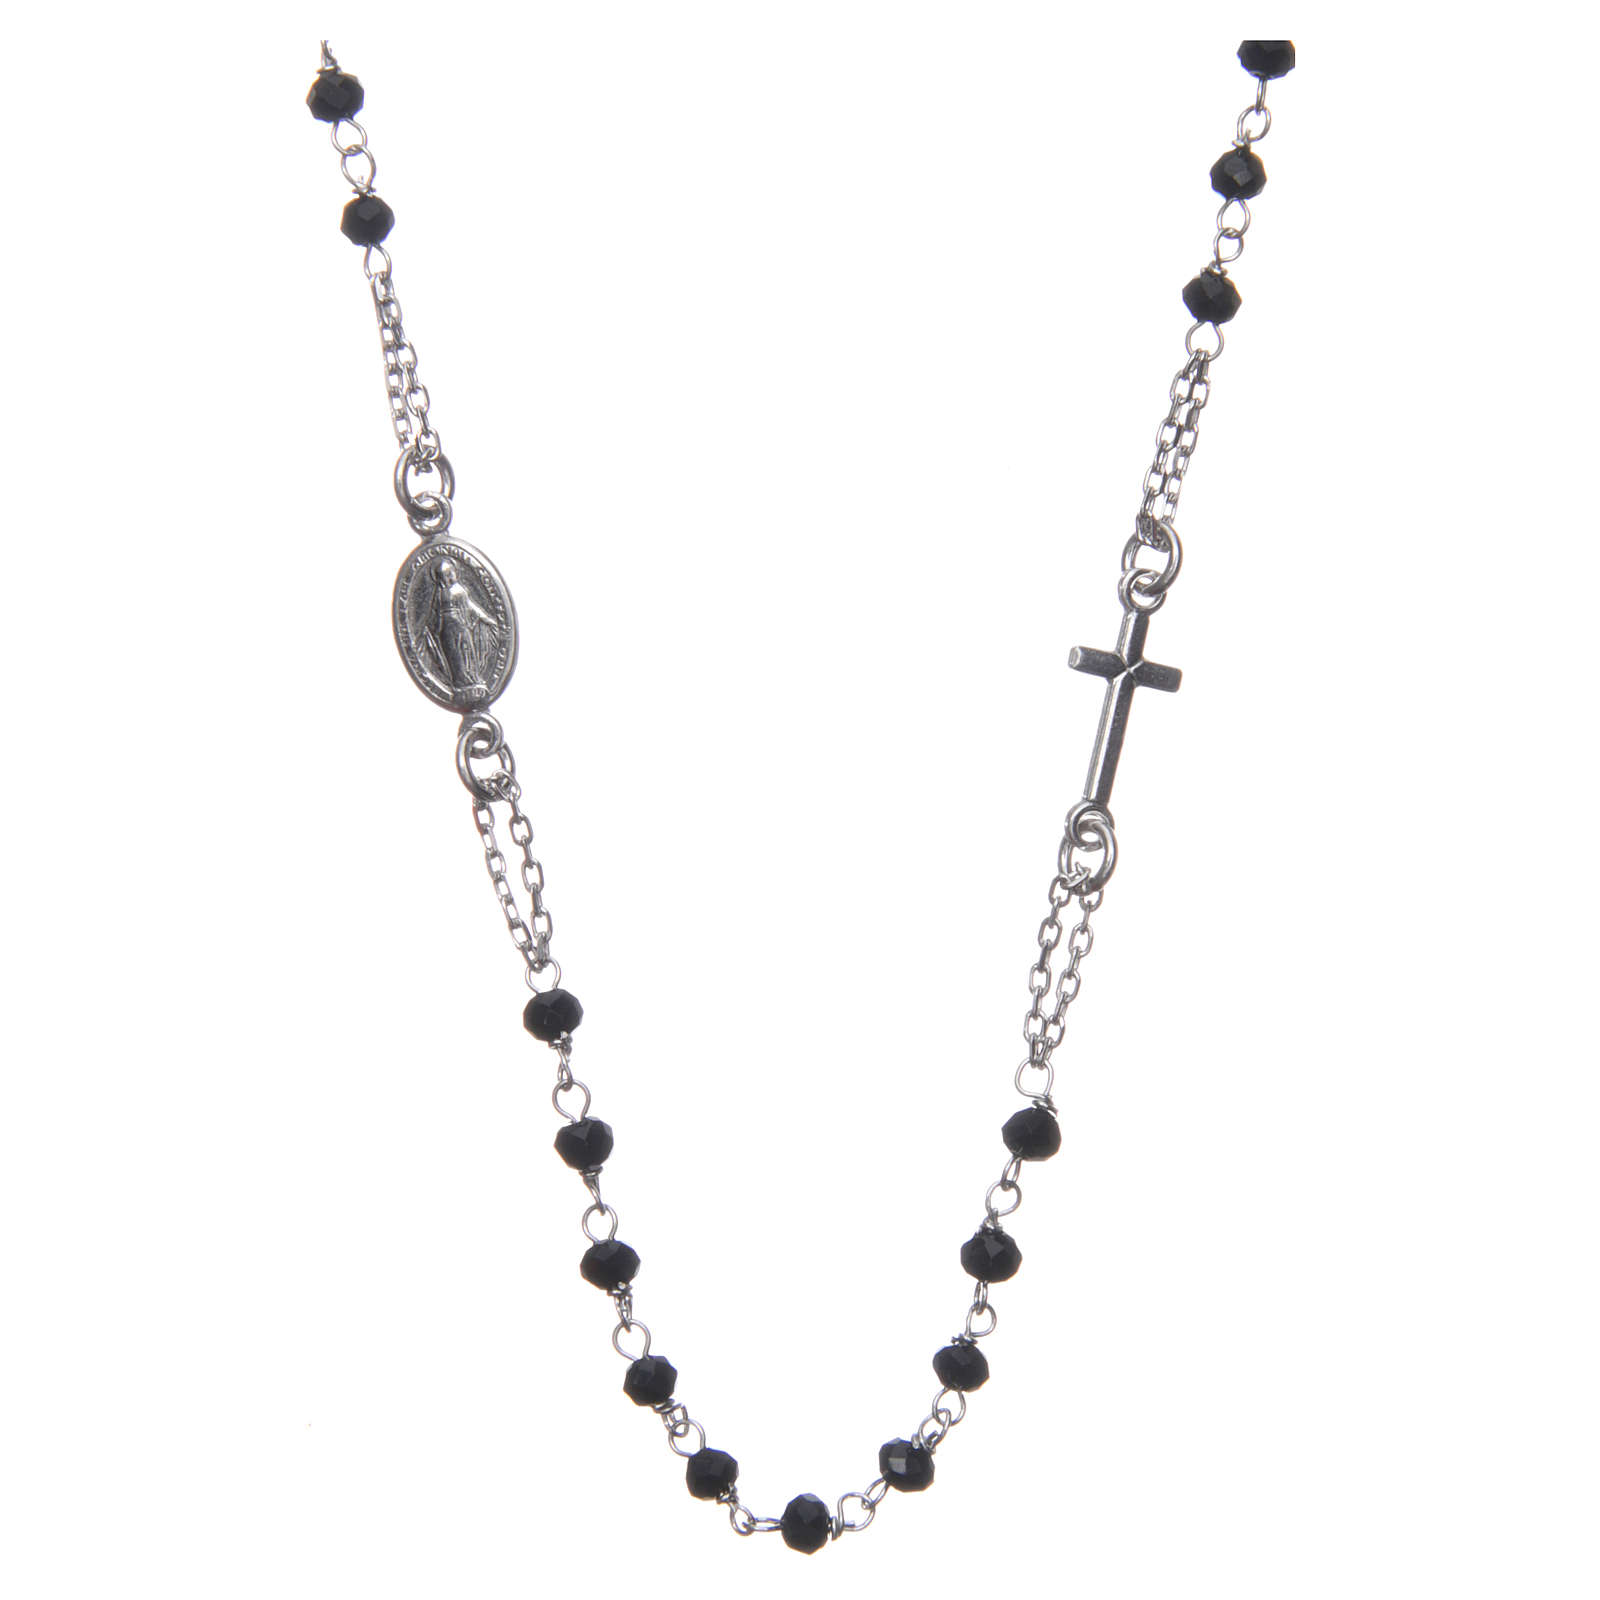 Medjugorje rosary choker in silver with black grains and Jesus medalet 4